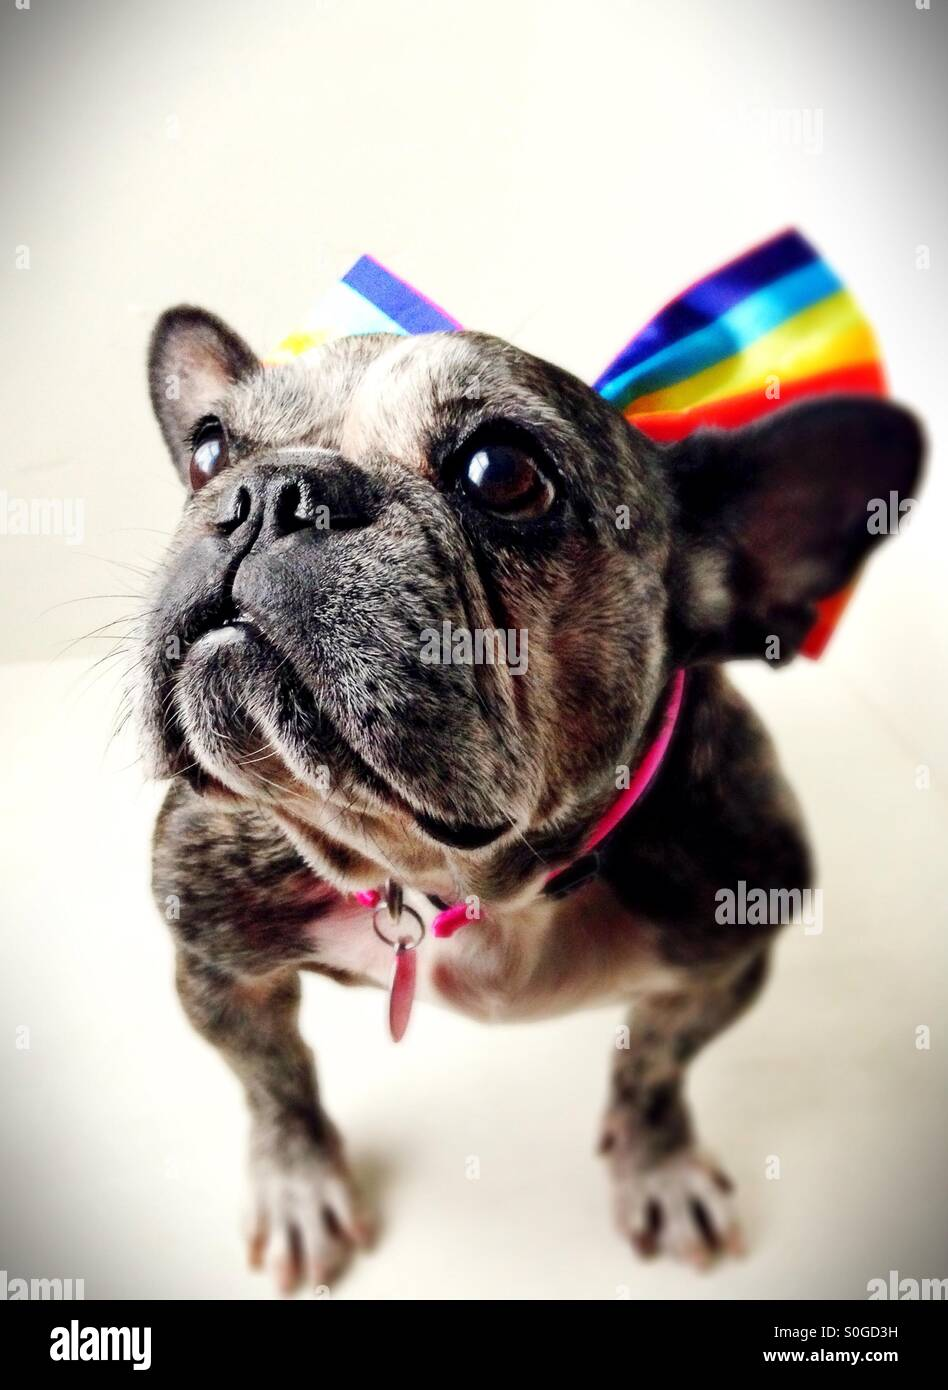 A cute old French bulldog wearing a rainbow striped bow. - Stock Image